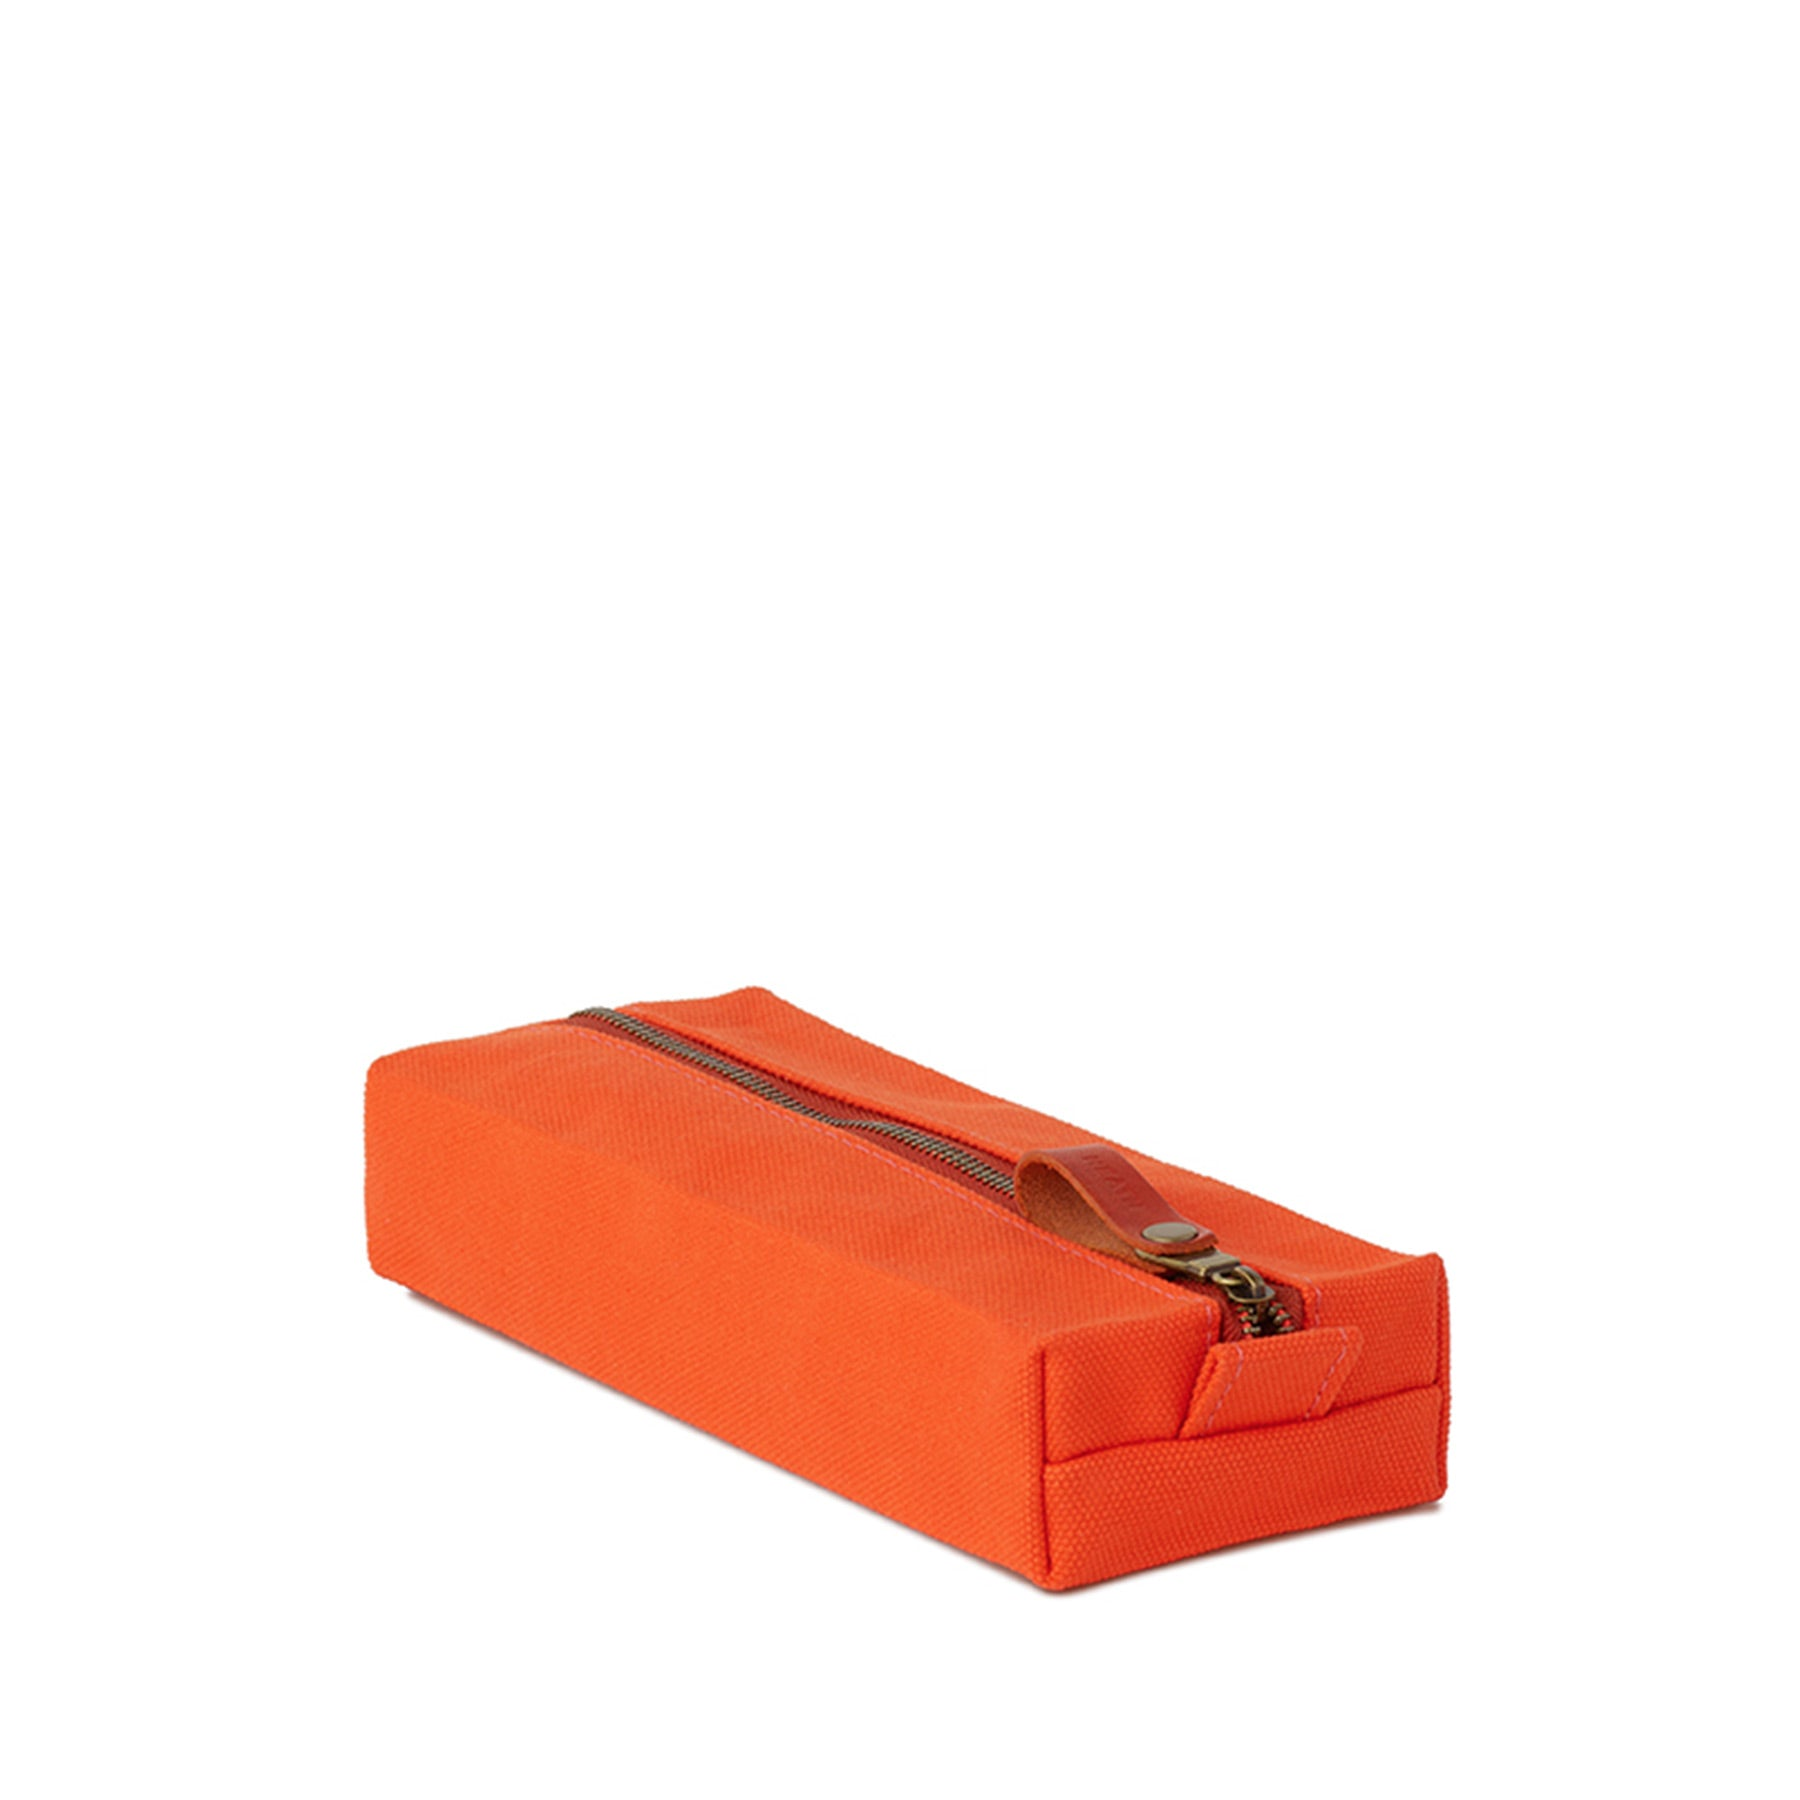 Flat Block Pouch in Heath Orange Zoom Image 1